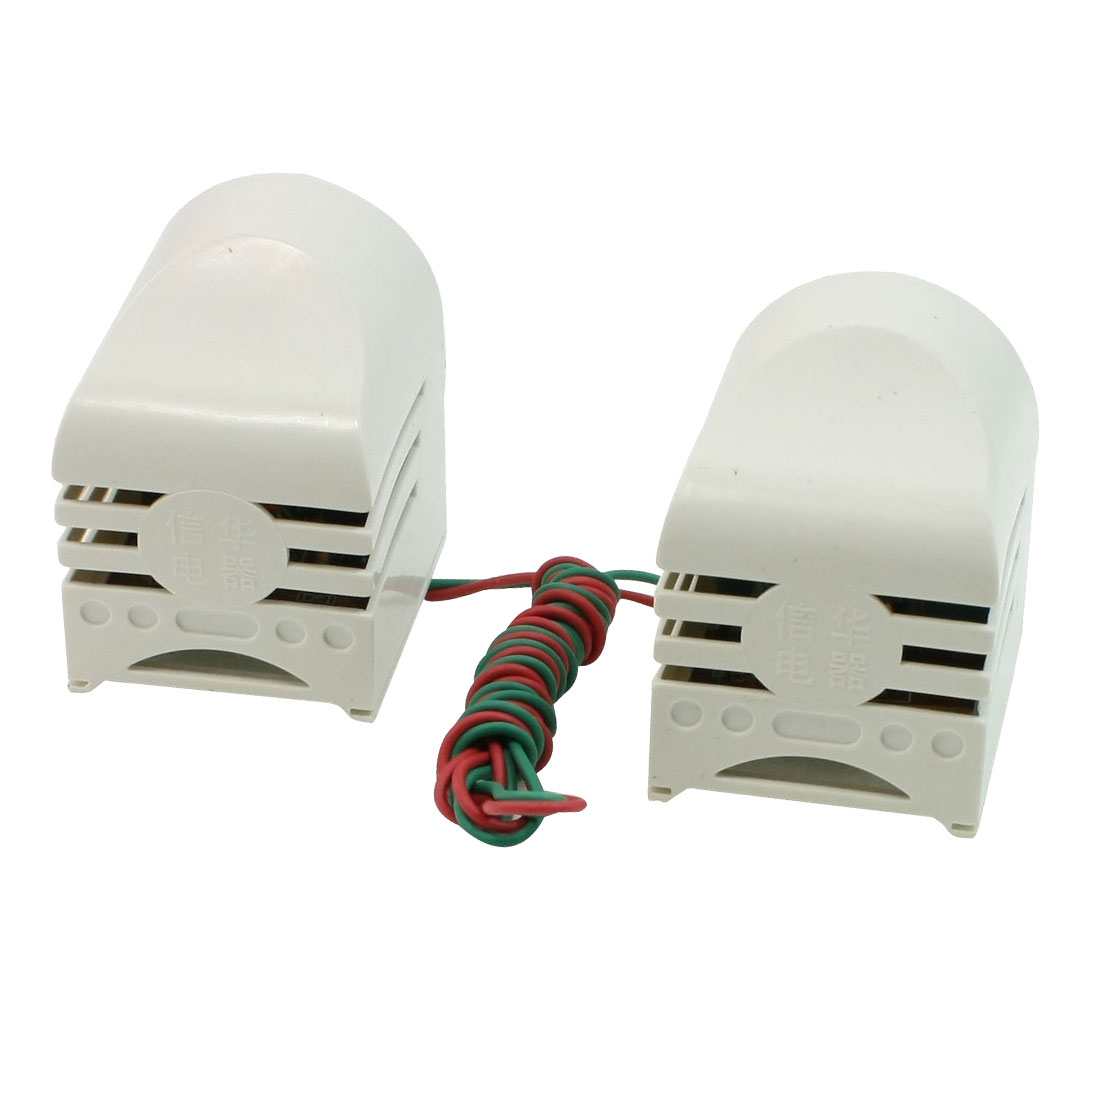 Pair T12 T10 T8 Fluorescent Tube Light 2 Pin Sockets Holder AC 220V 0.14A 30W